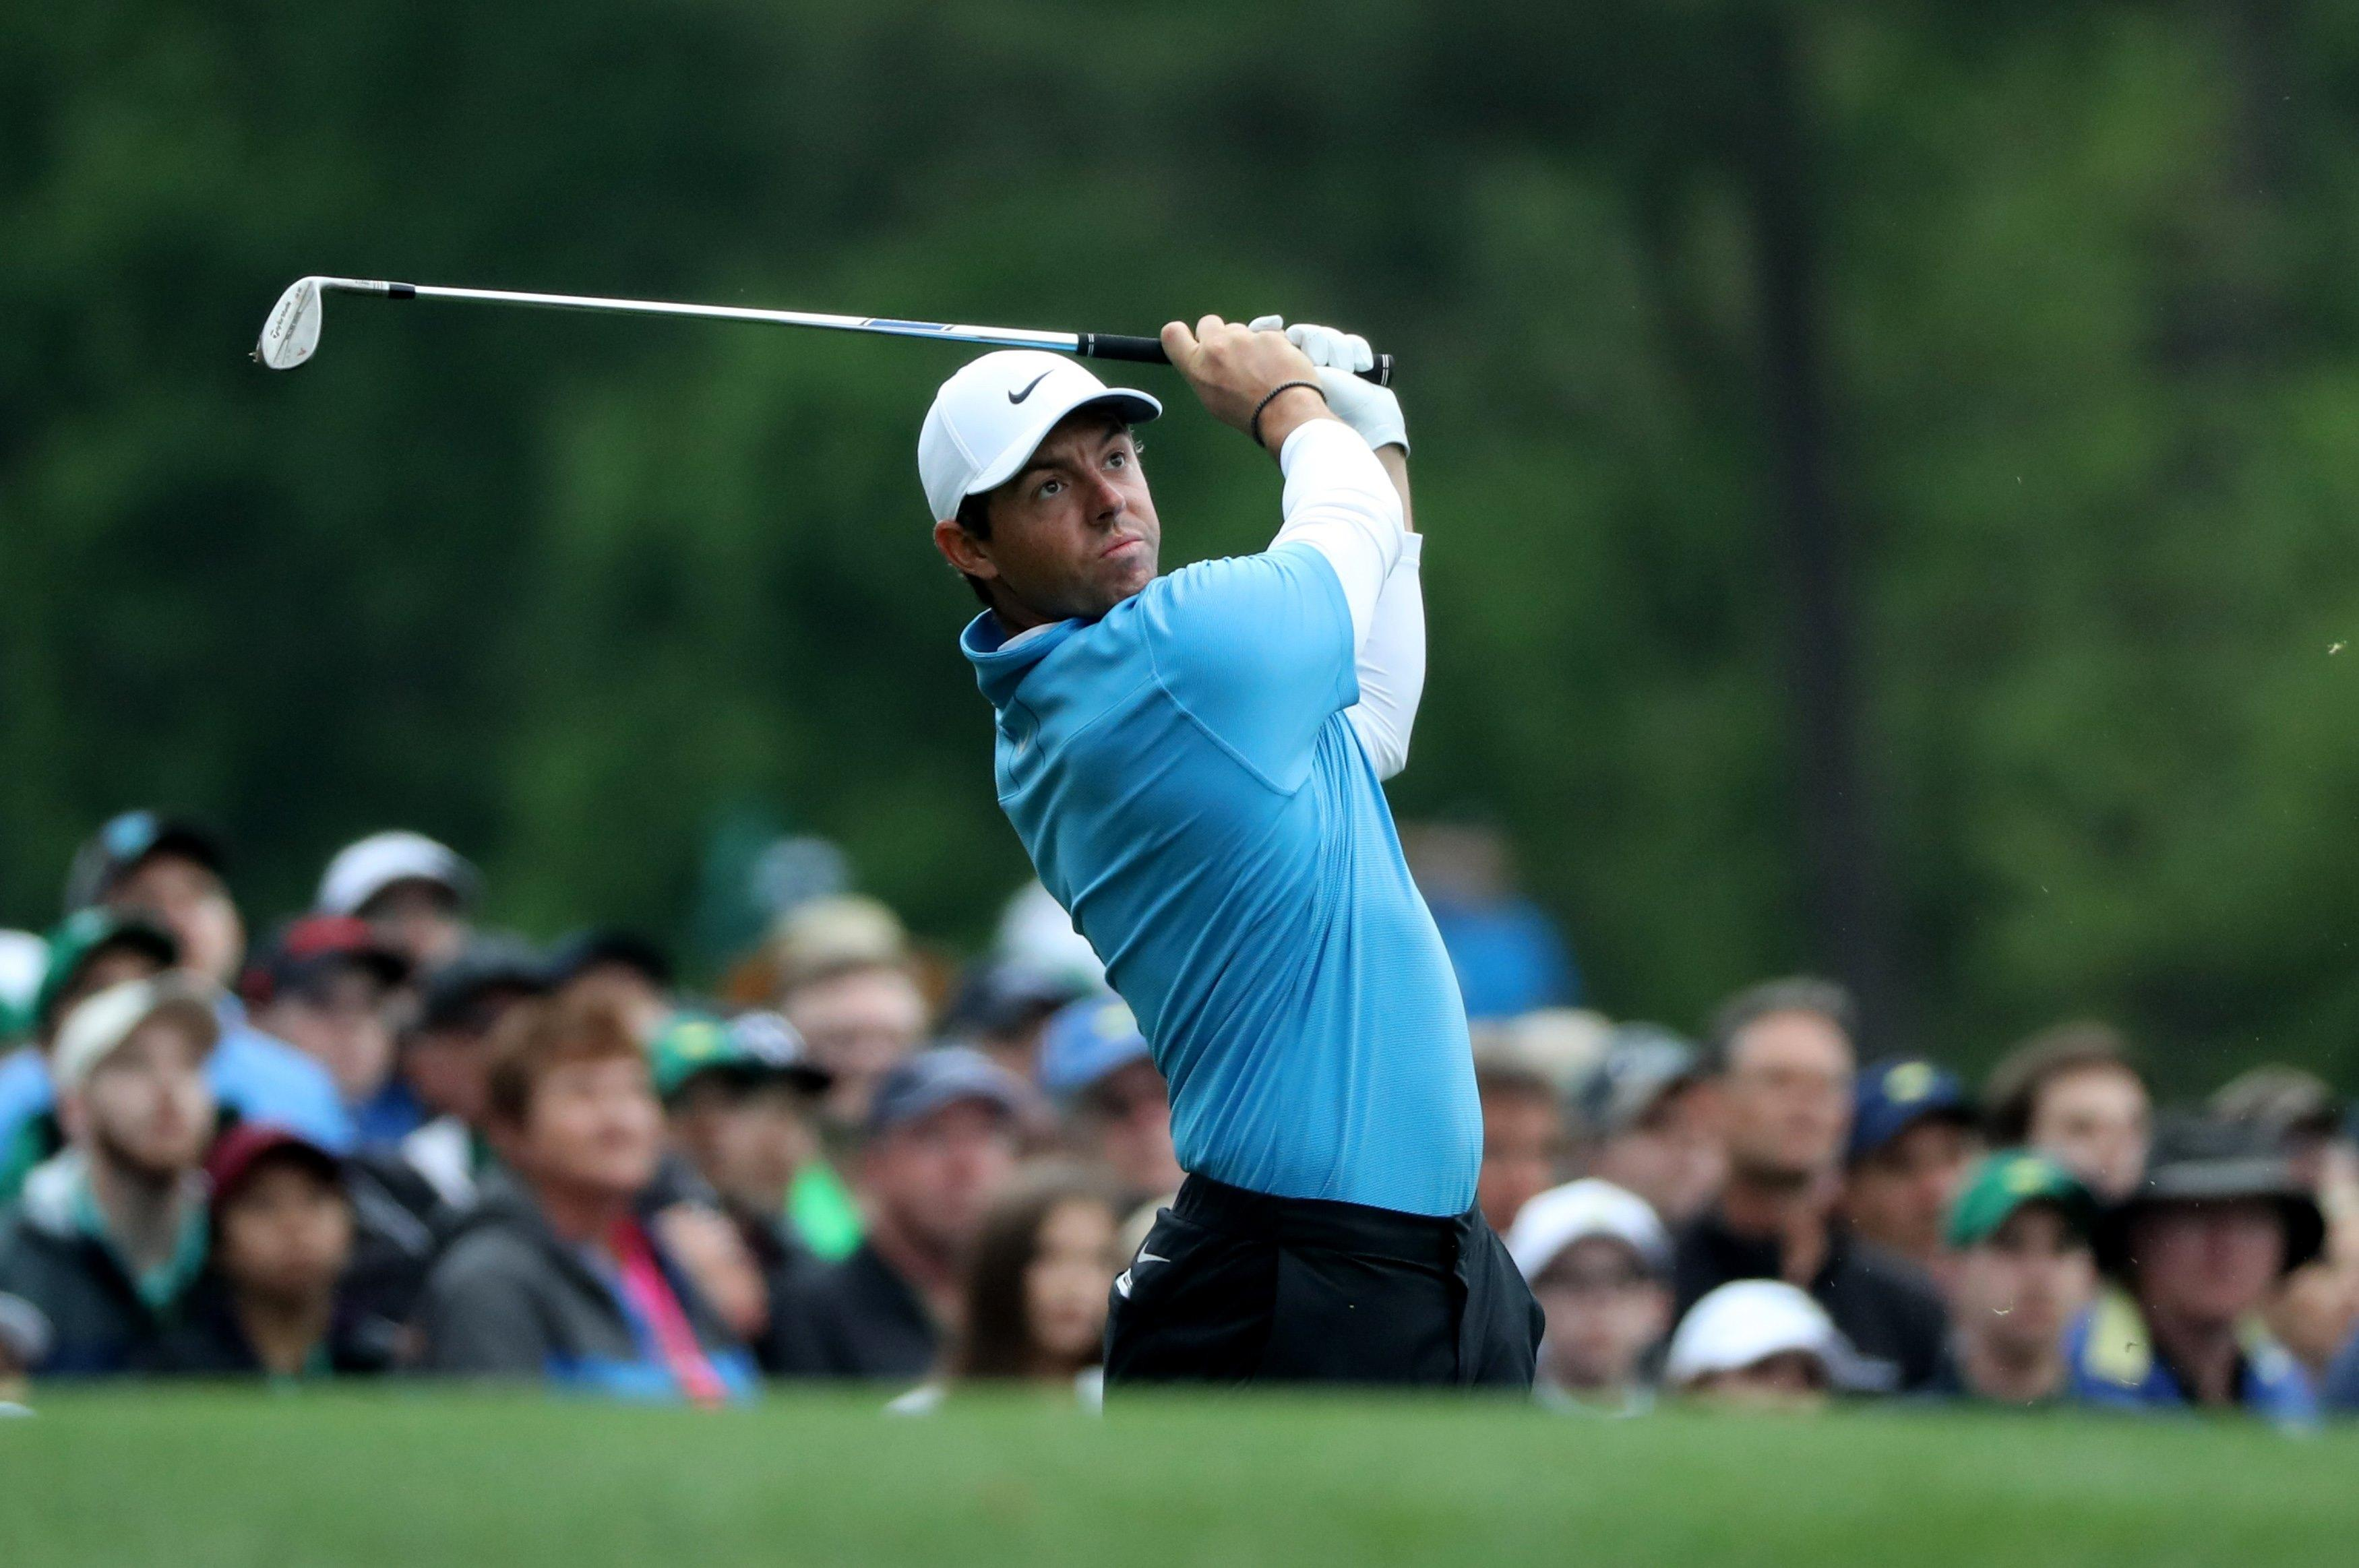 McIlroy is chasing a Masters win that would complete his set of Majors